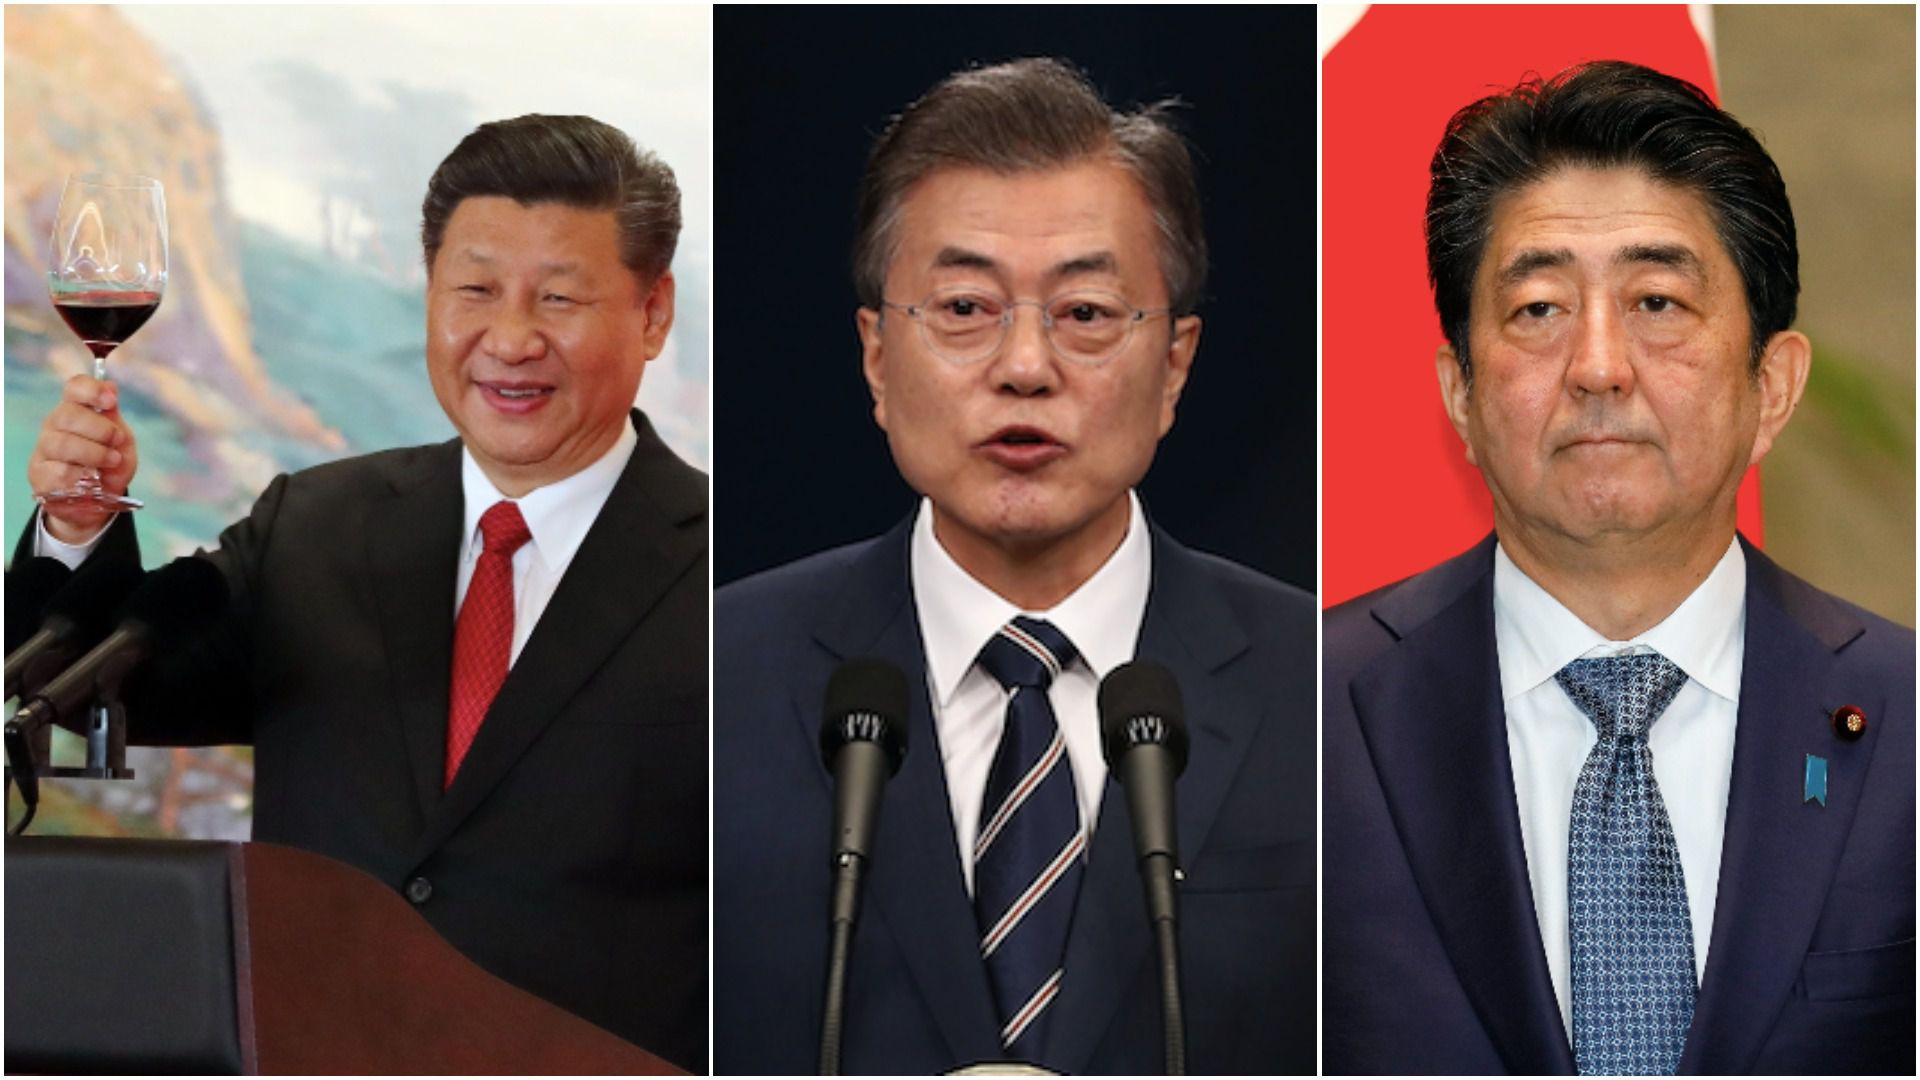 Xi Jinping raises a glass, Moon Jae In, Shinzo Abe